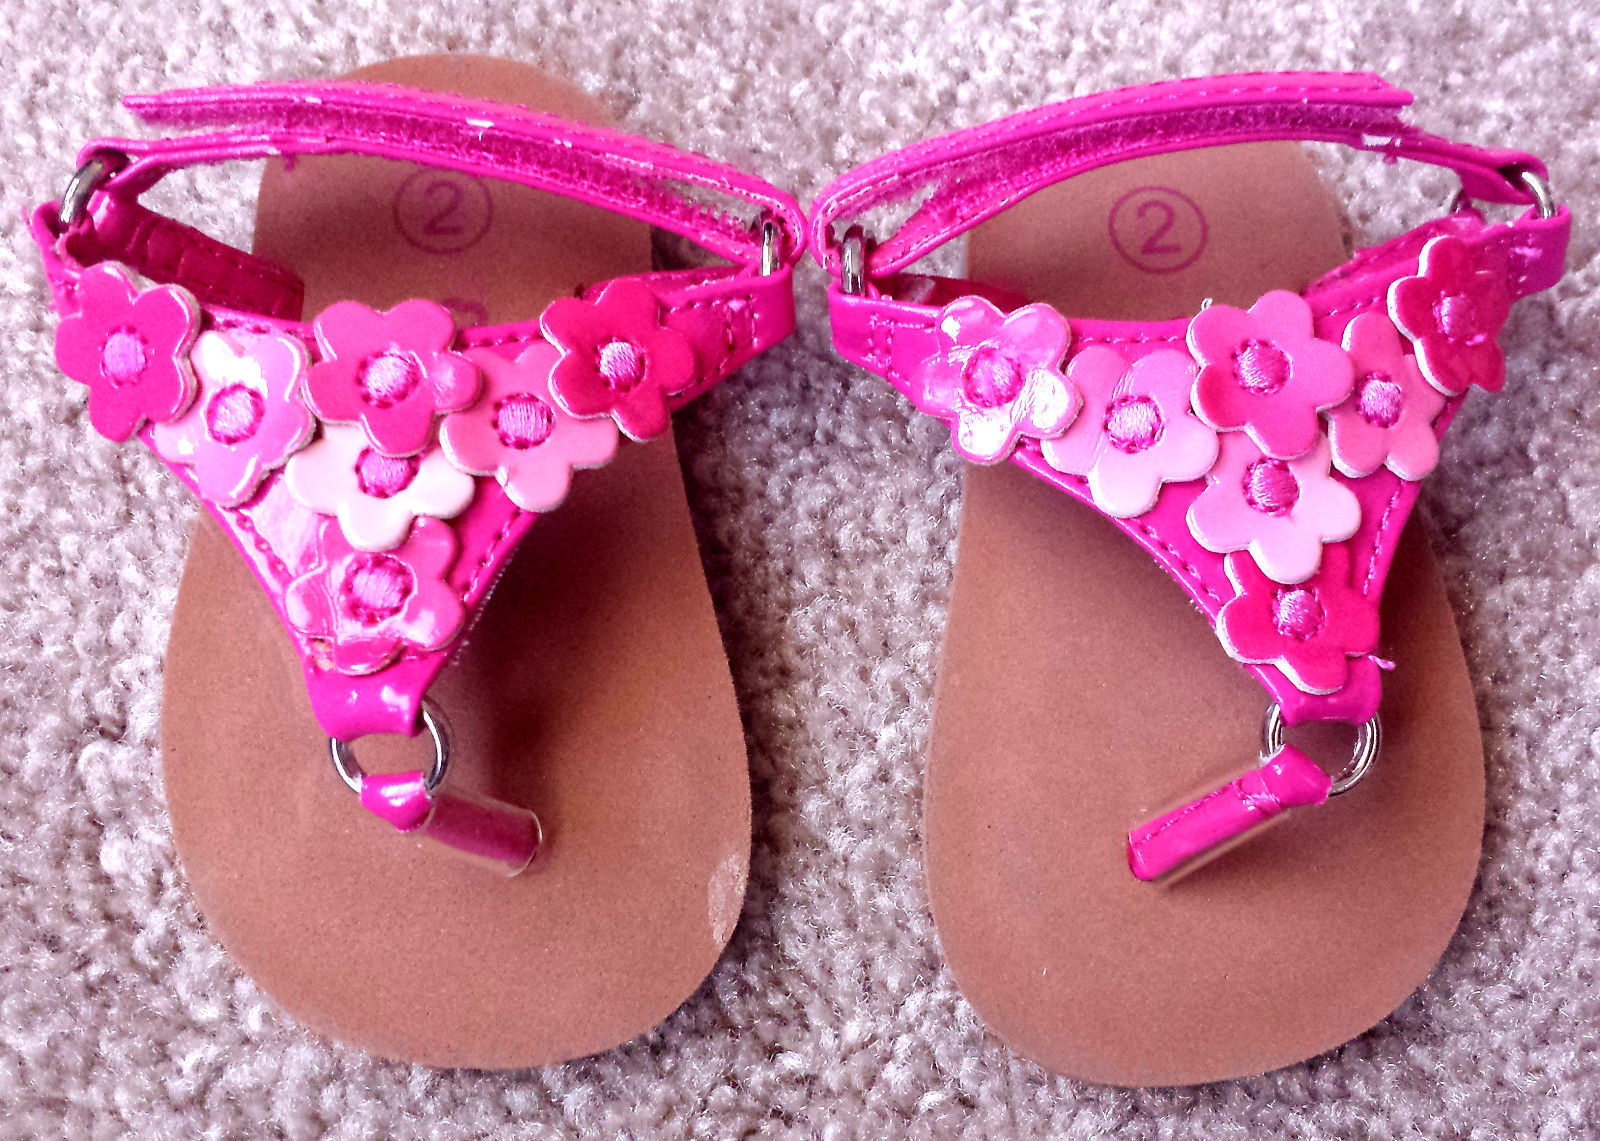 Baby Girl's Size 2 Teeny Toes Pink Floral Designed Sandals - Velcro Enclosure